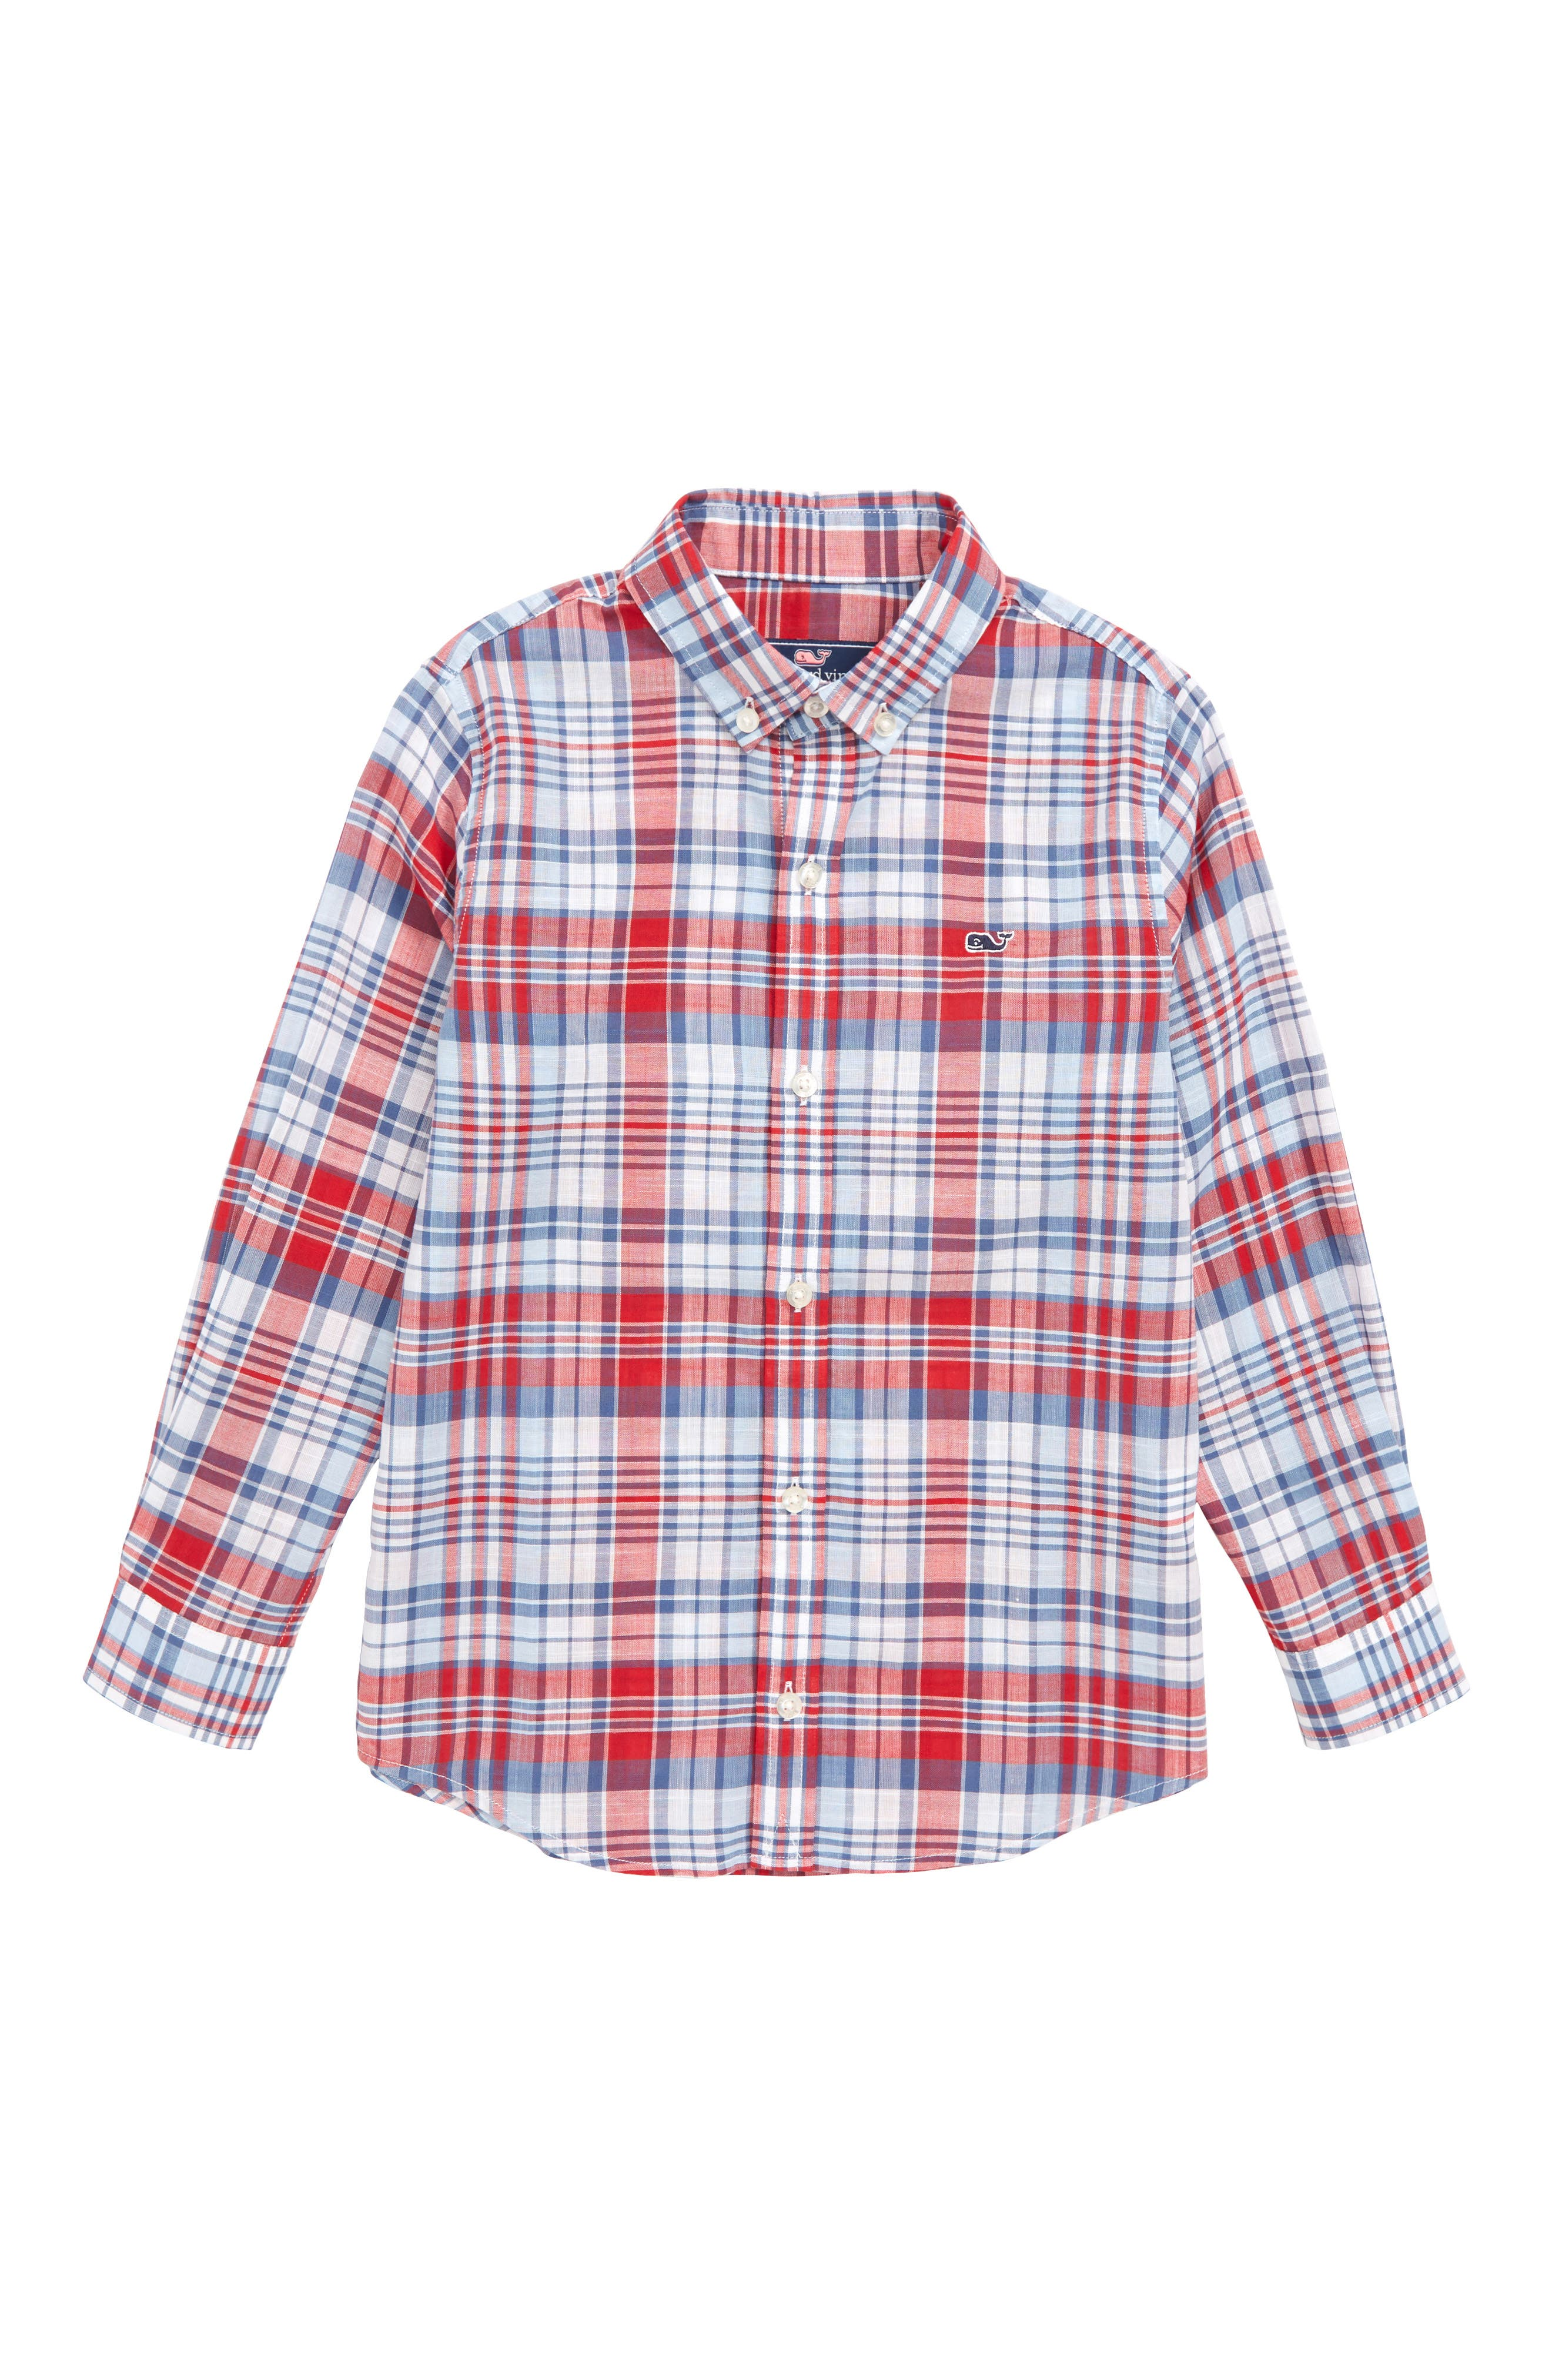 Firework Plaid Whale Shirt,                         Main,                         color, Lighthouse Red